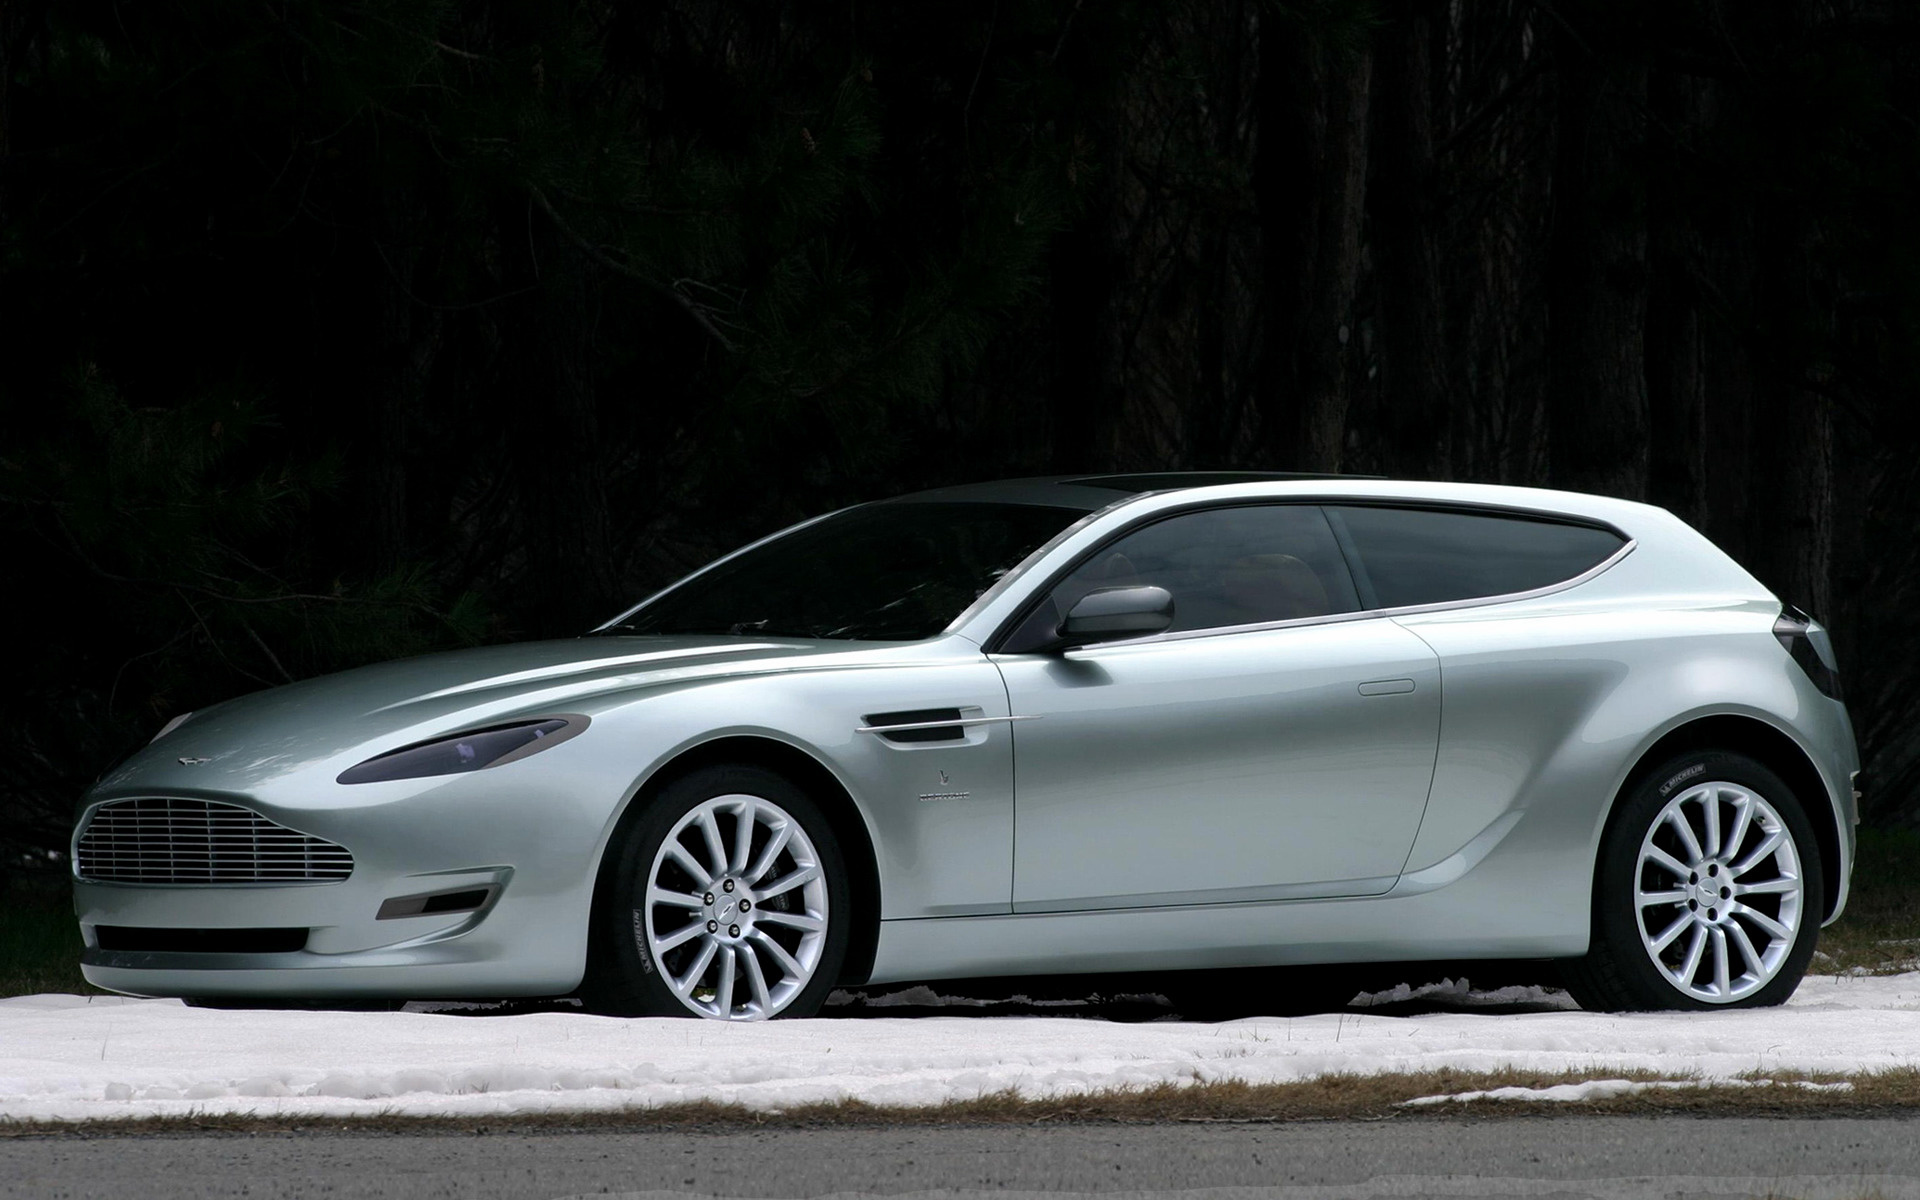 2004 Aston Martin Bertone Jet 2 - Wallpapers and HD Images ...